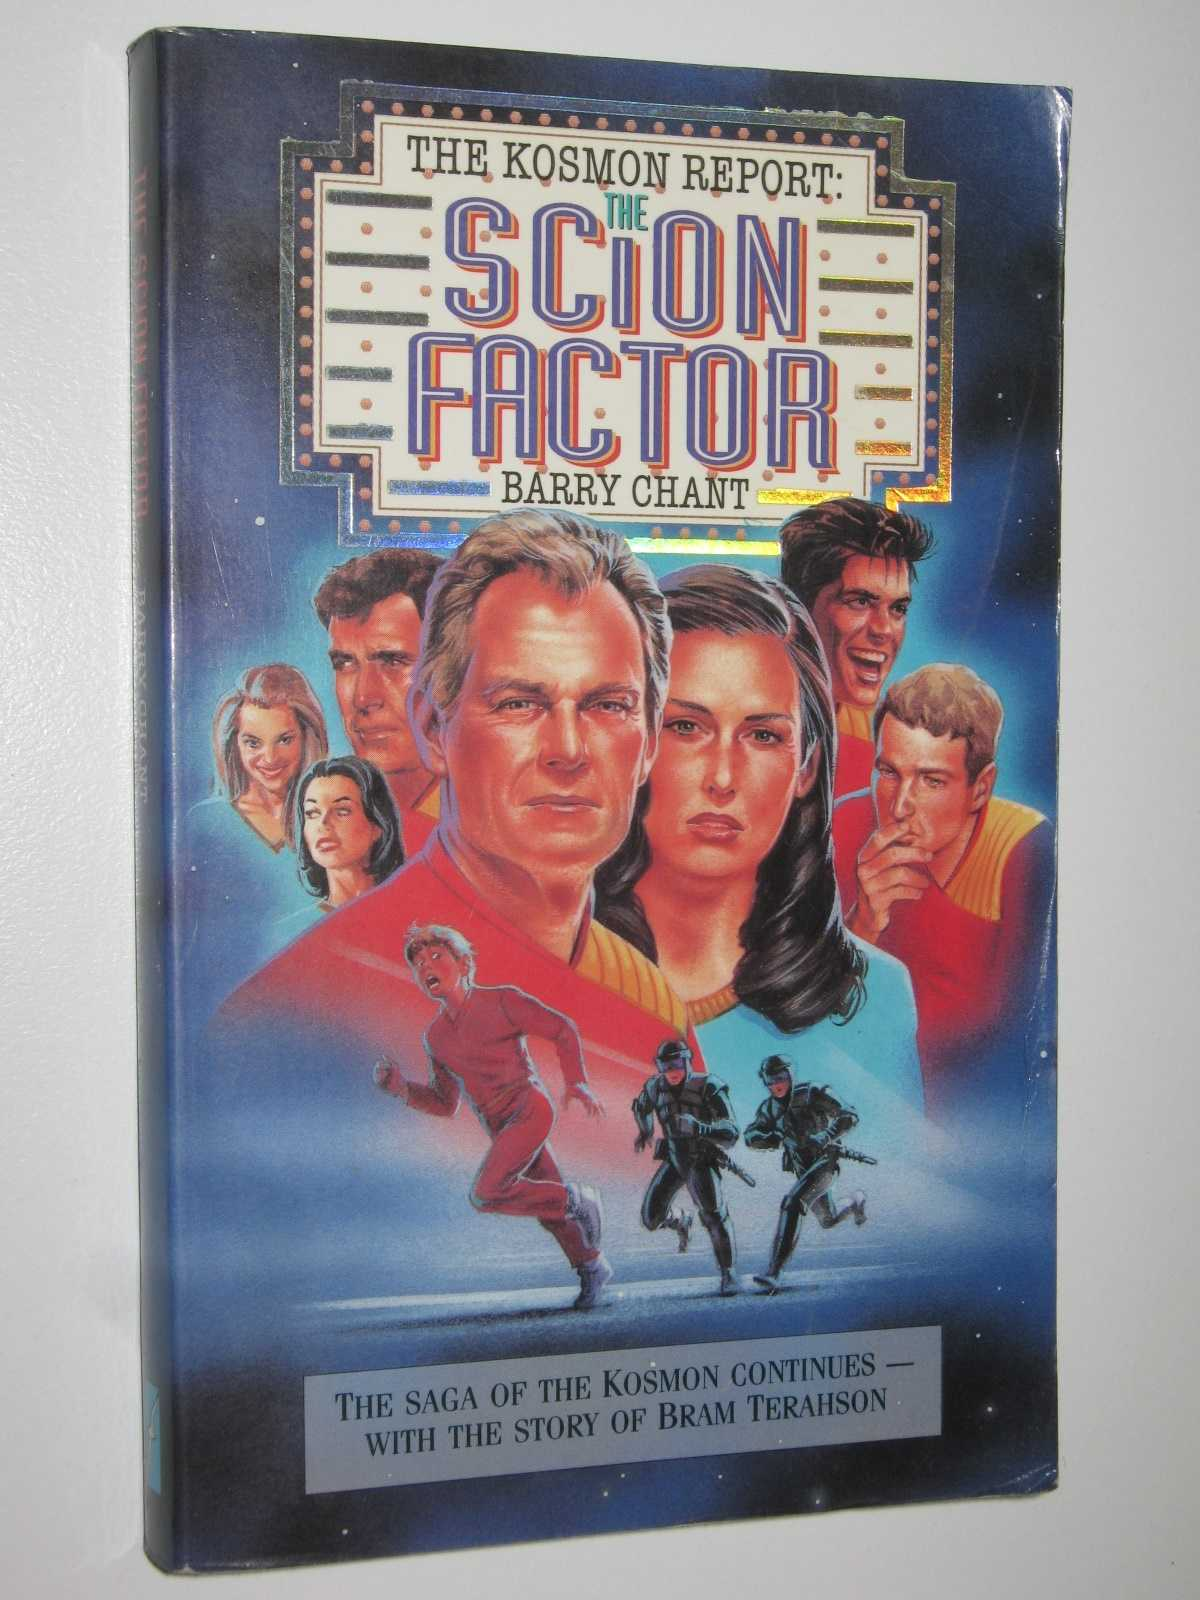 Image for The Scion Factor - The Kosmon Report Series #2